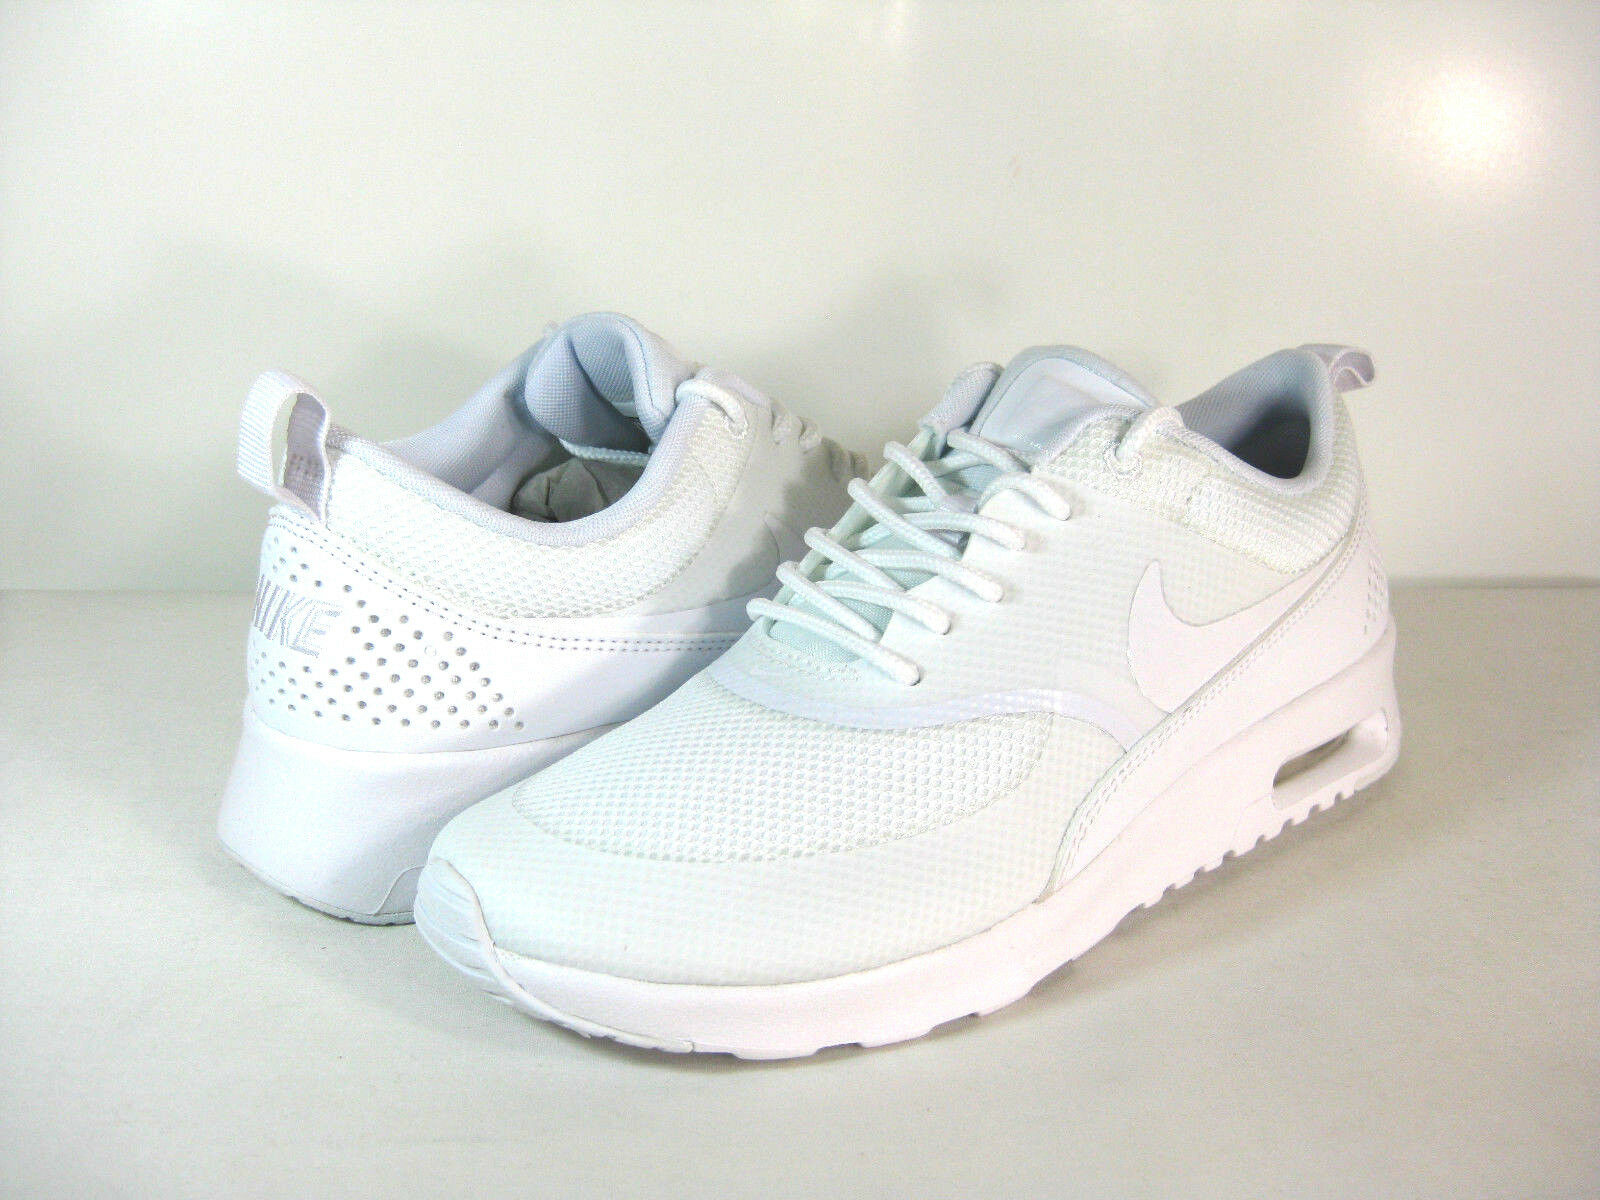 NIKE femmes  AIR MAX THEA blanc / blanc -599409 101- ATHLETIC